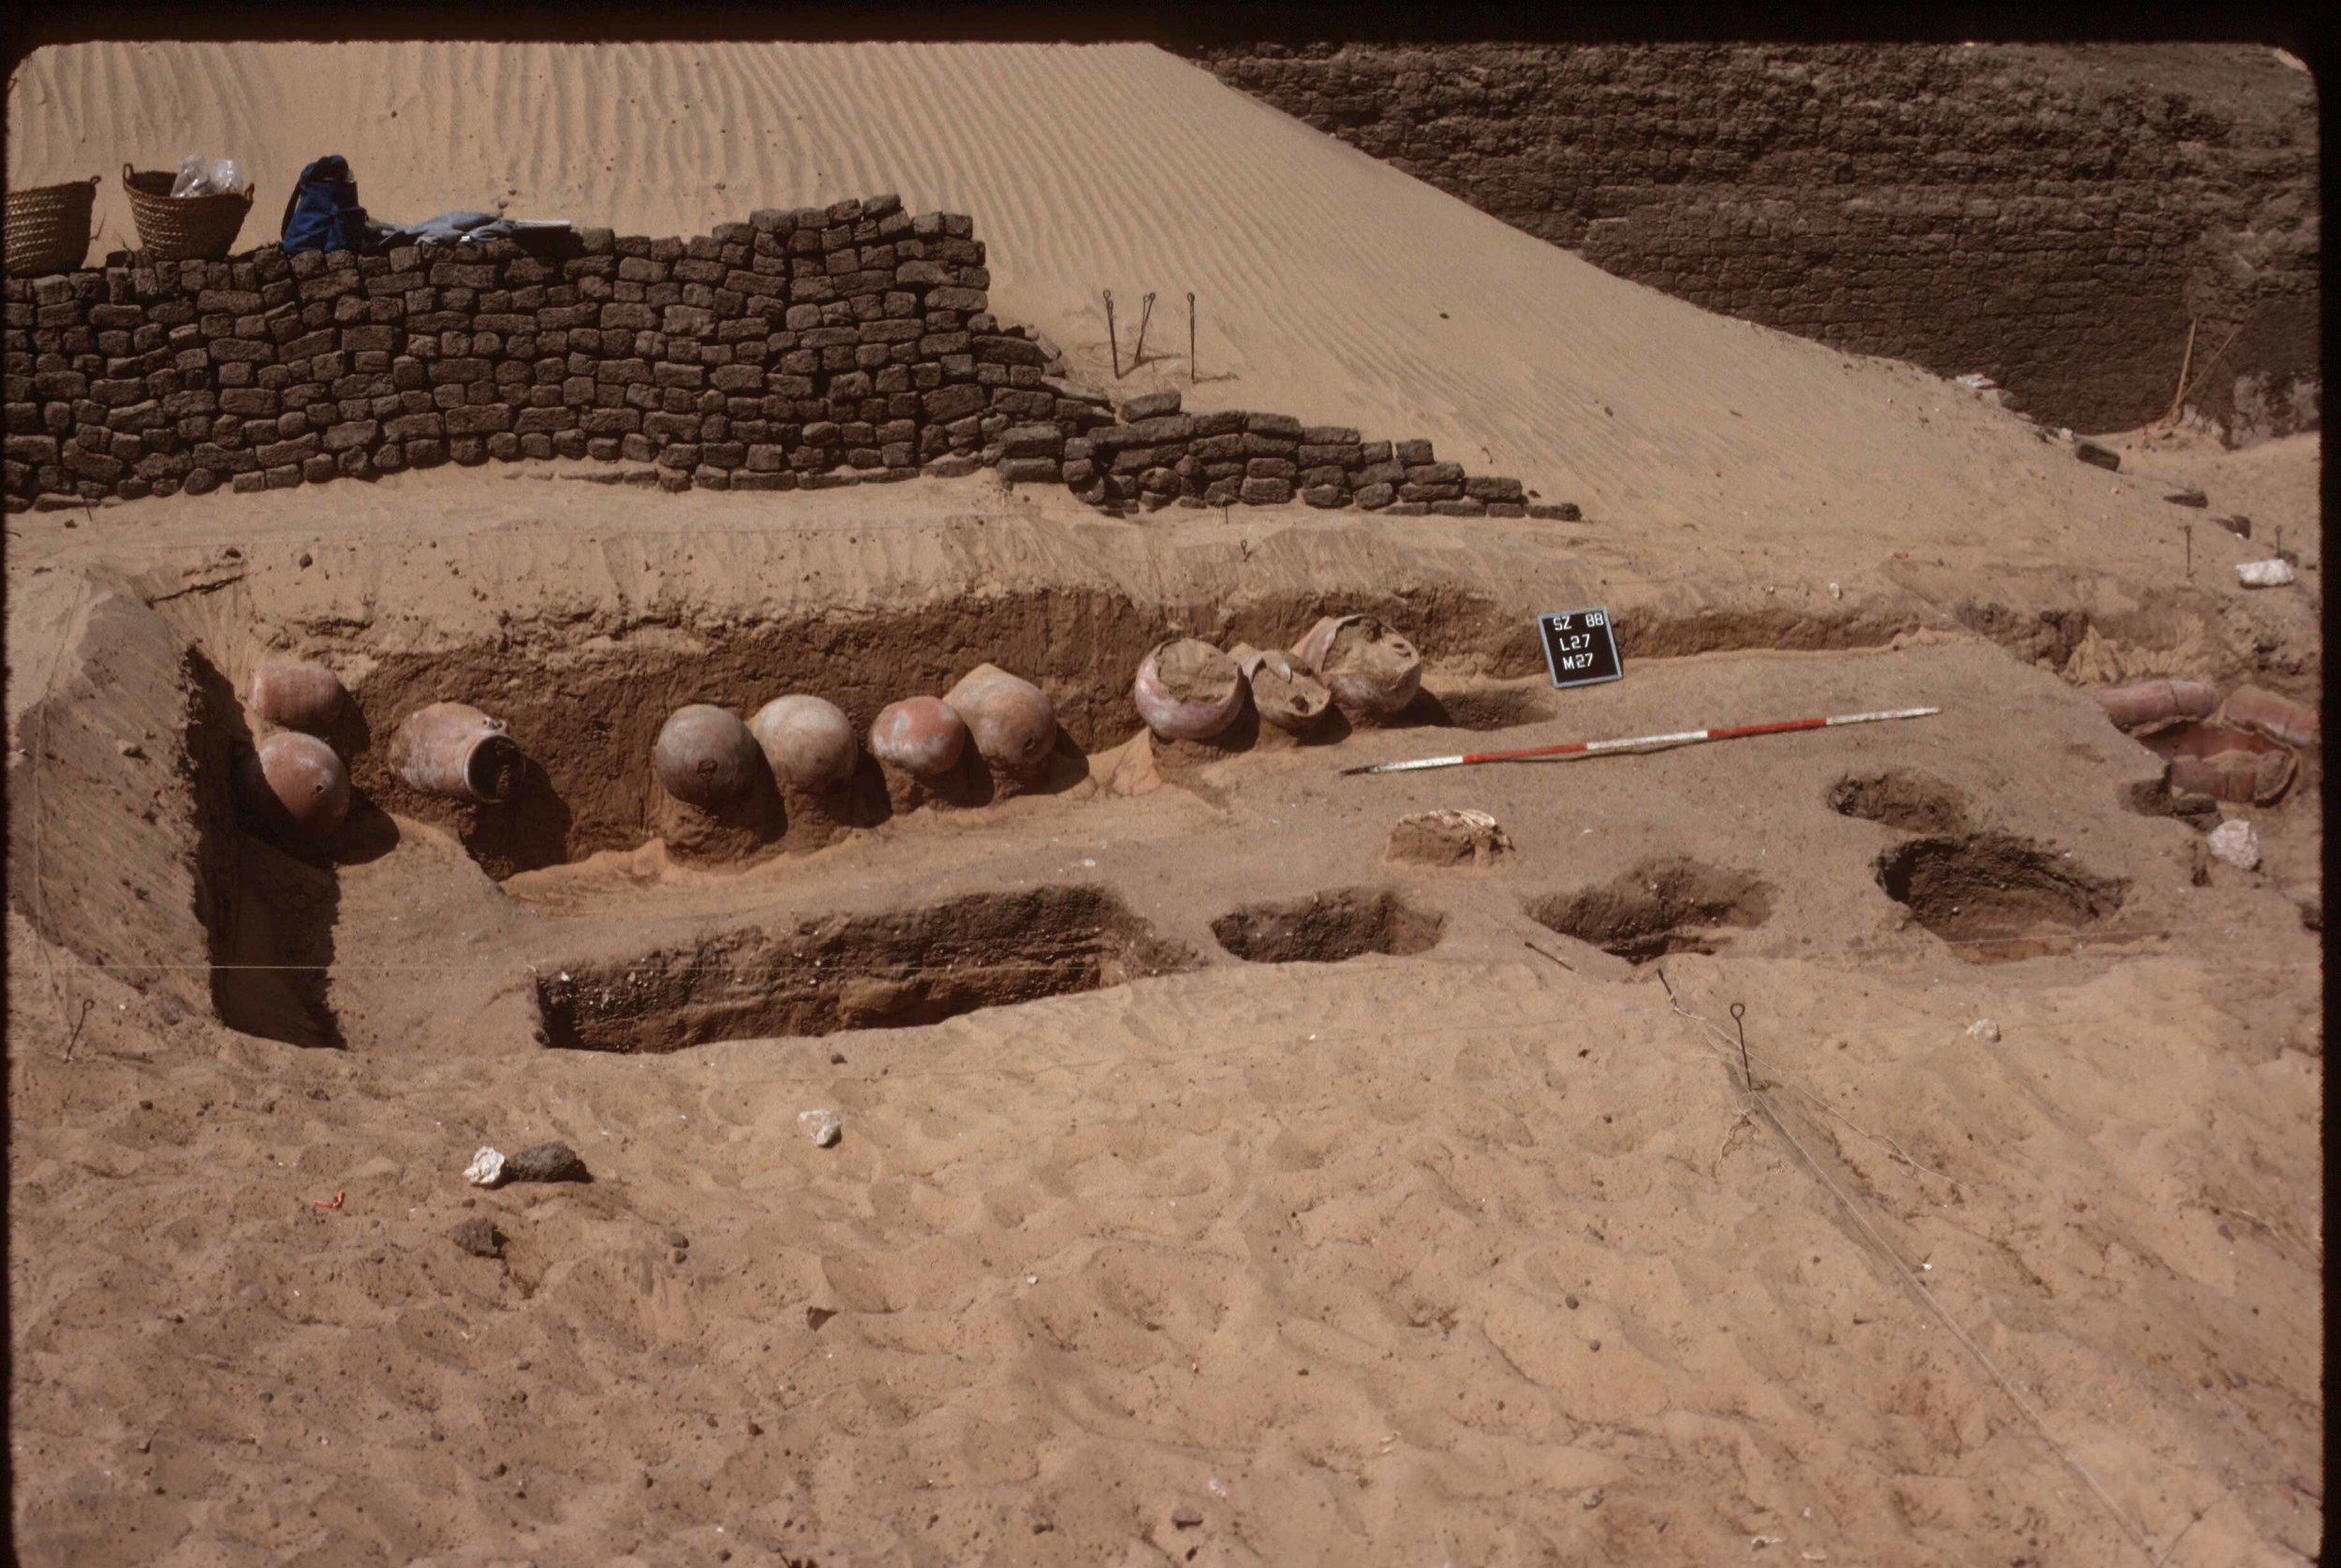 Fig. 3. Excavation detail inside the Shunet el-Zebib, showing ibis burial jars and burial pits. Photo: David O'Connor © North Abydos Expedition (formerly Penn-Yale-IFA), courtesy of the Penn Museum